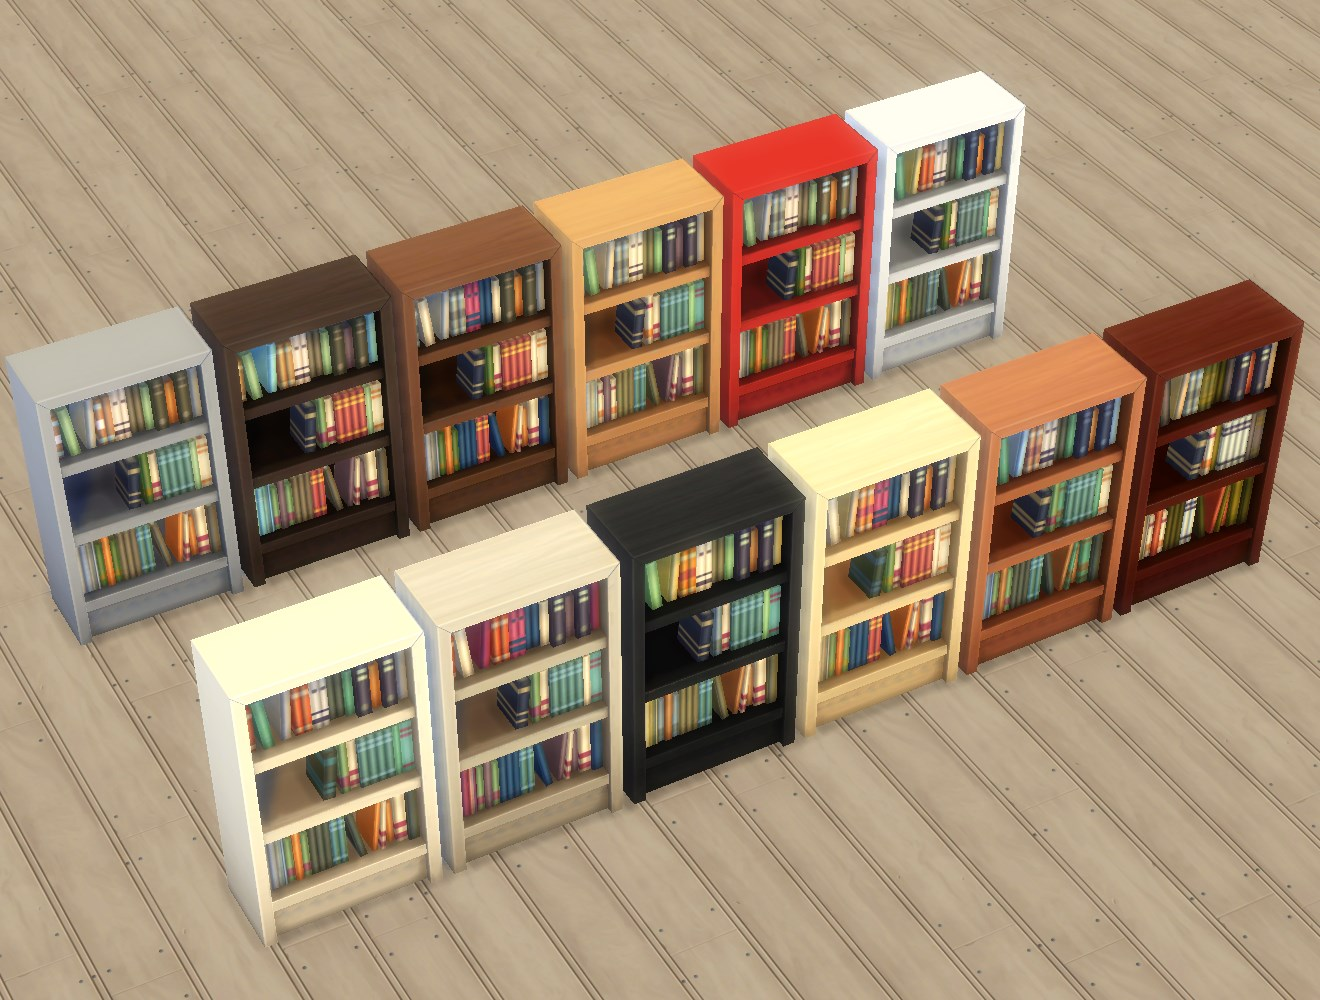 """Very Impressive portraiture of My Sims 4 Blog: Single Tile """"Intellect"""" Bookcases by Plasticbox with #AB2920 color and 1320x1000 pixels"""